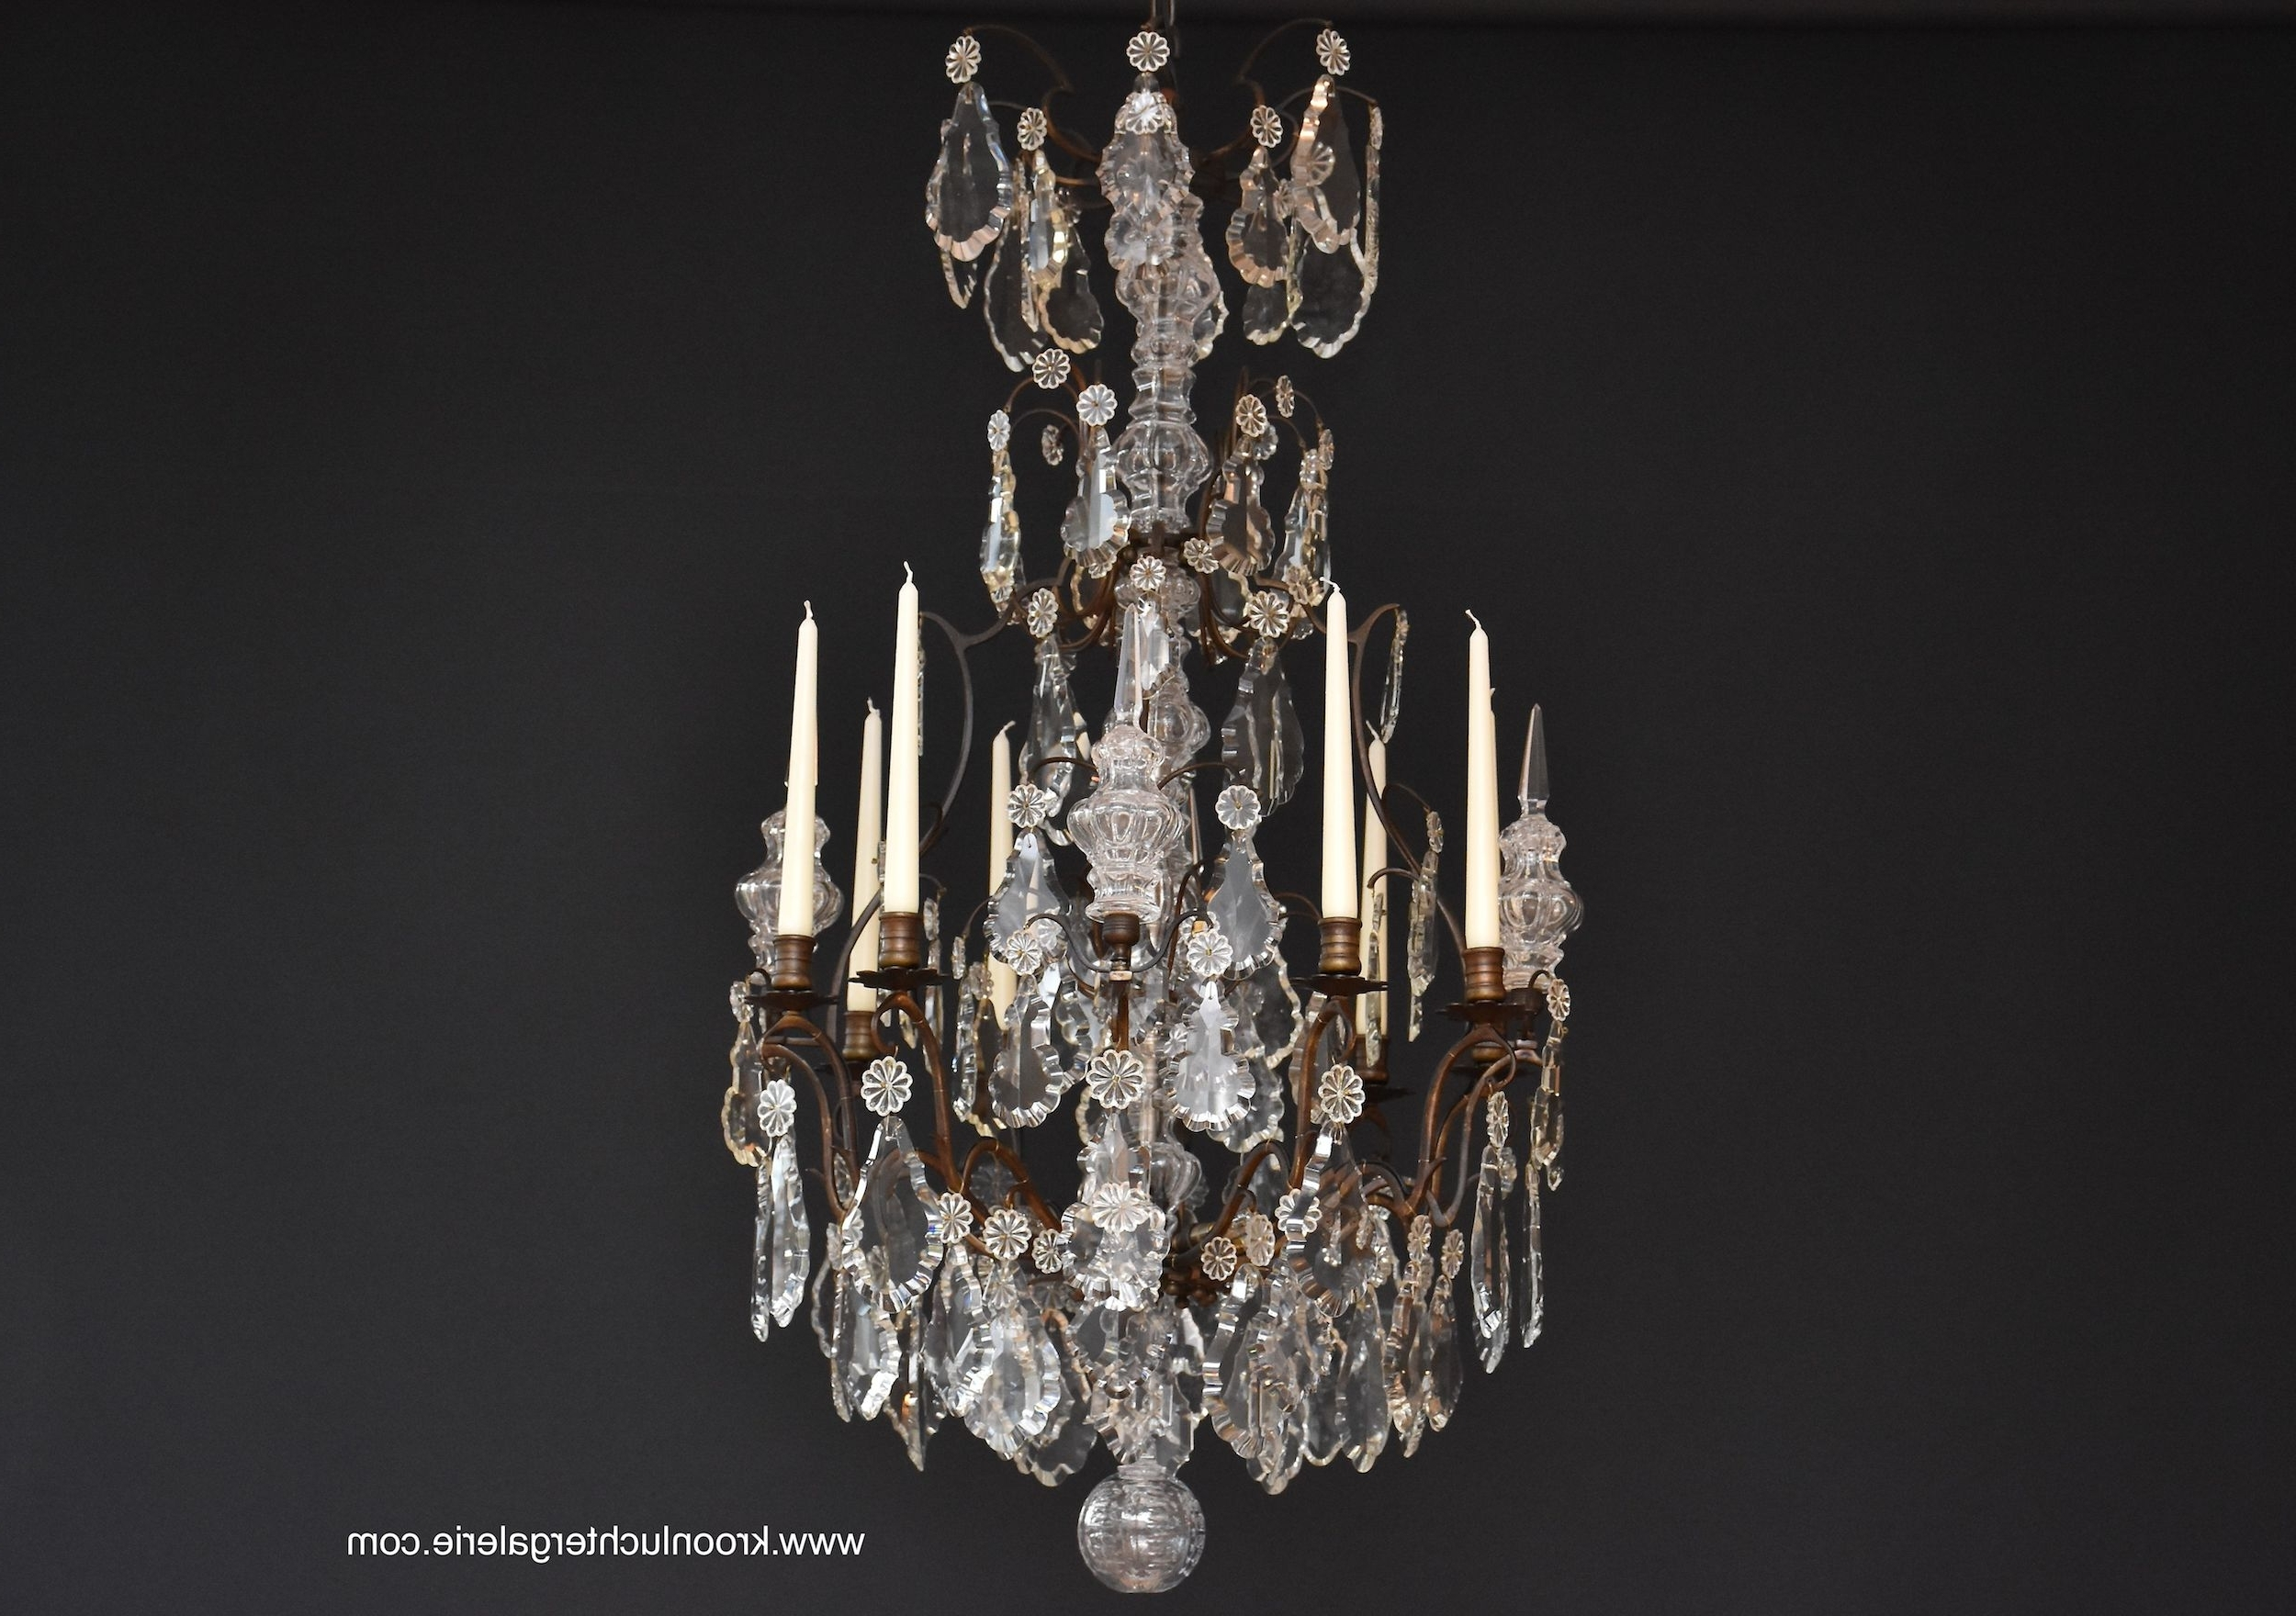 French Chandelier In Style Of Louis Xv, Ref (View 7 of 15)